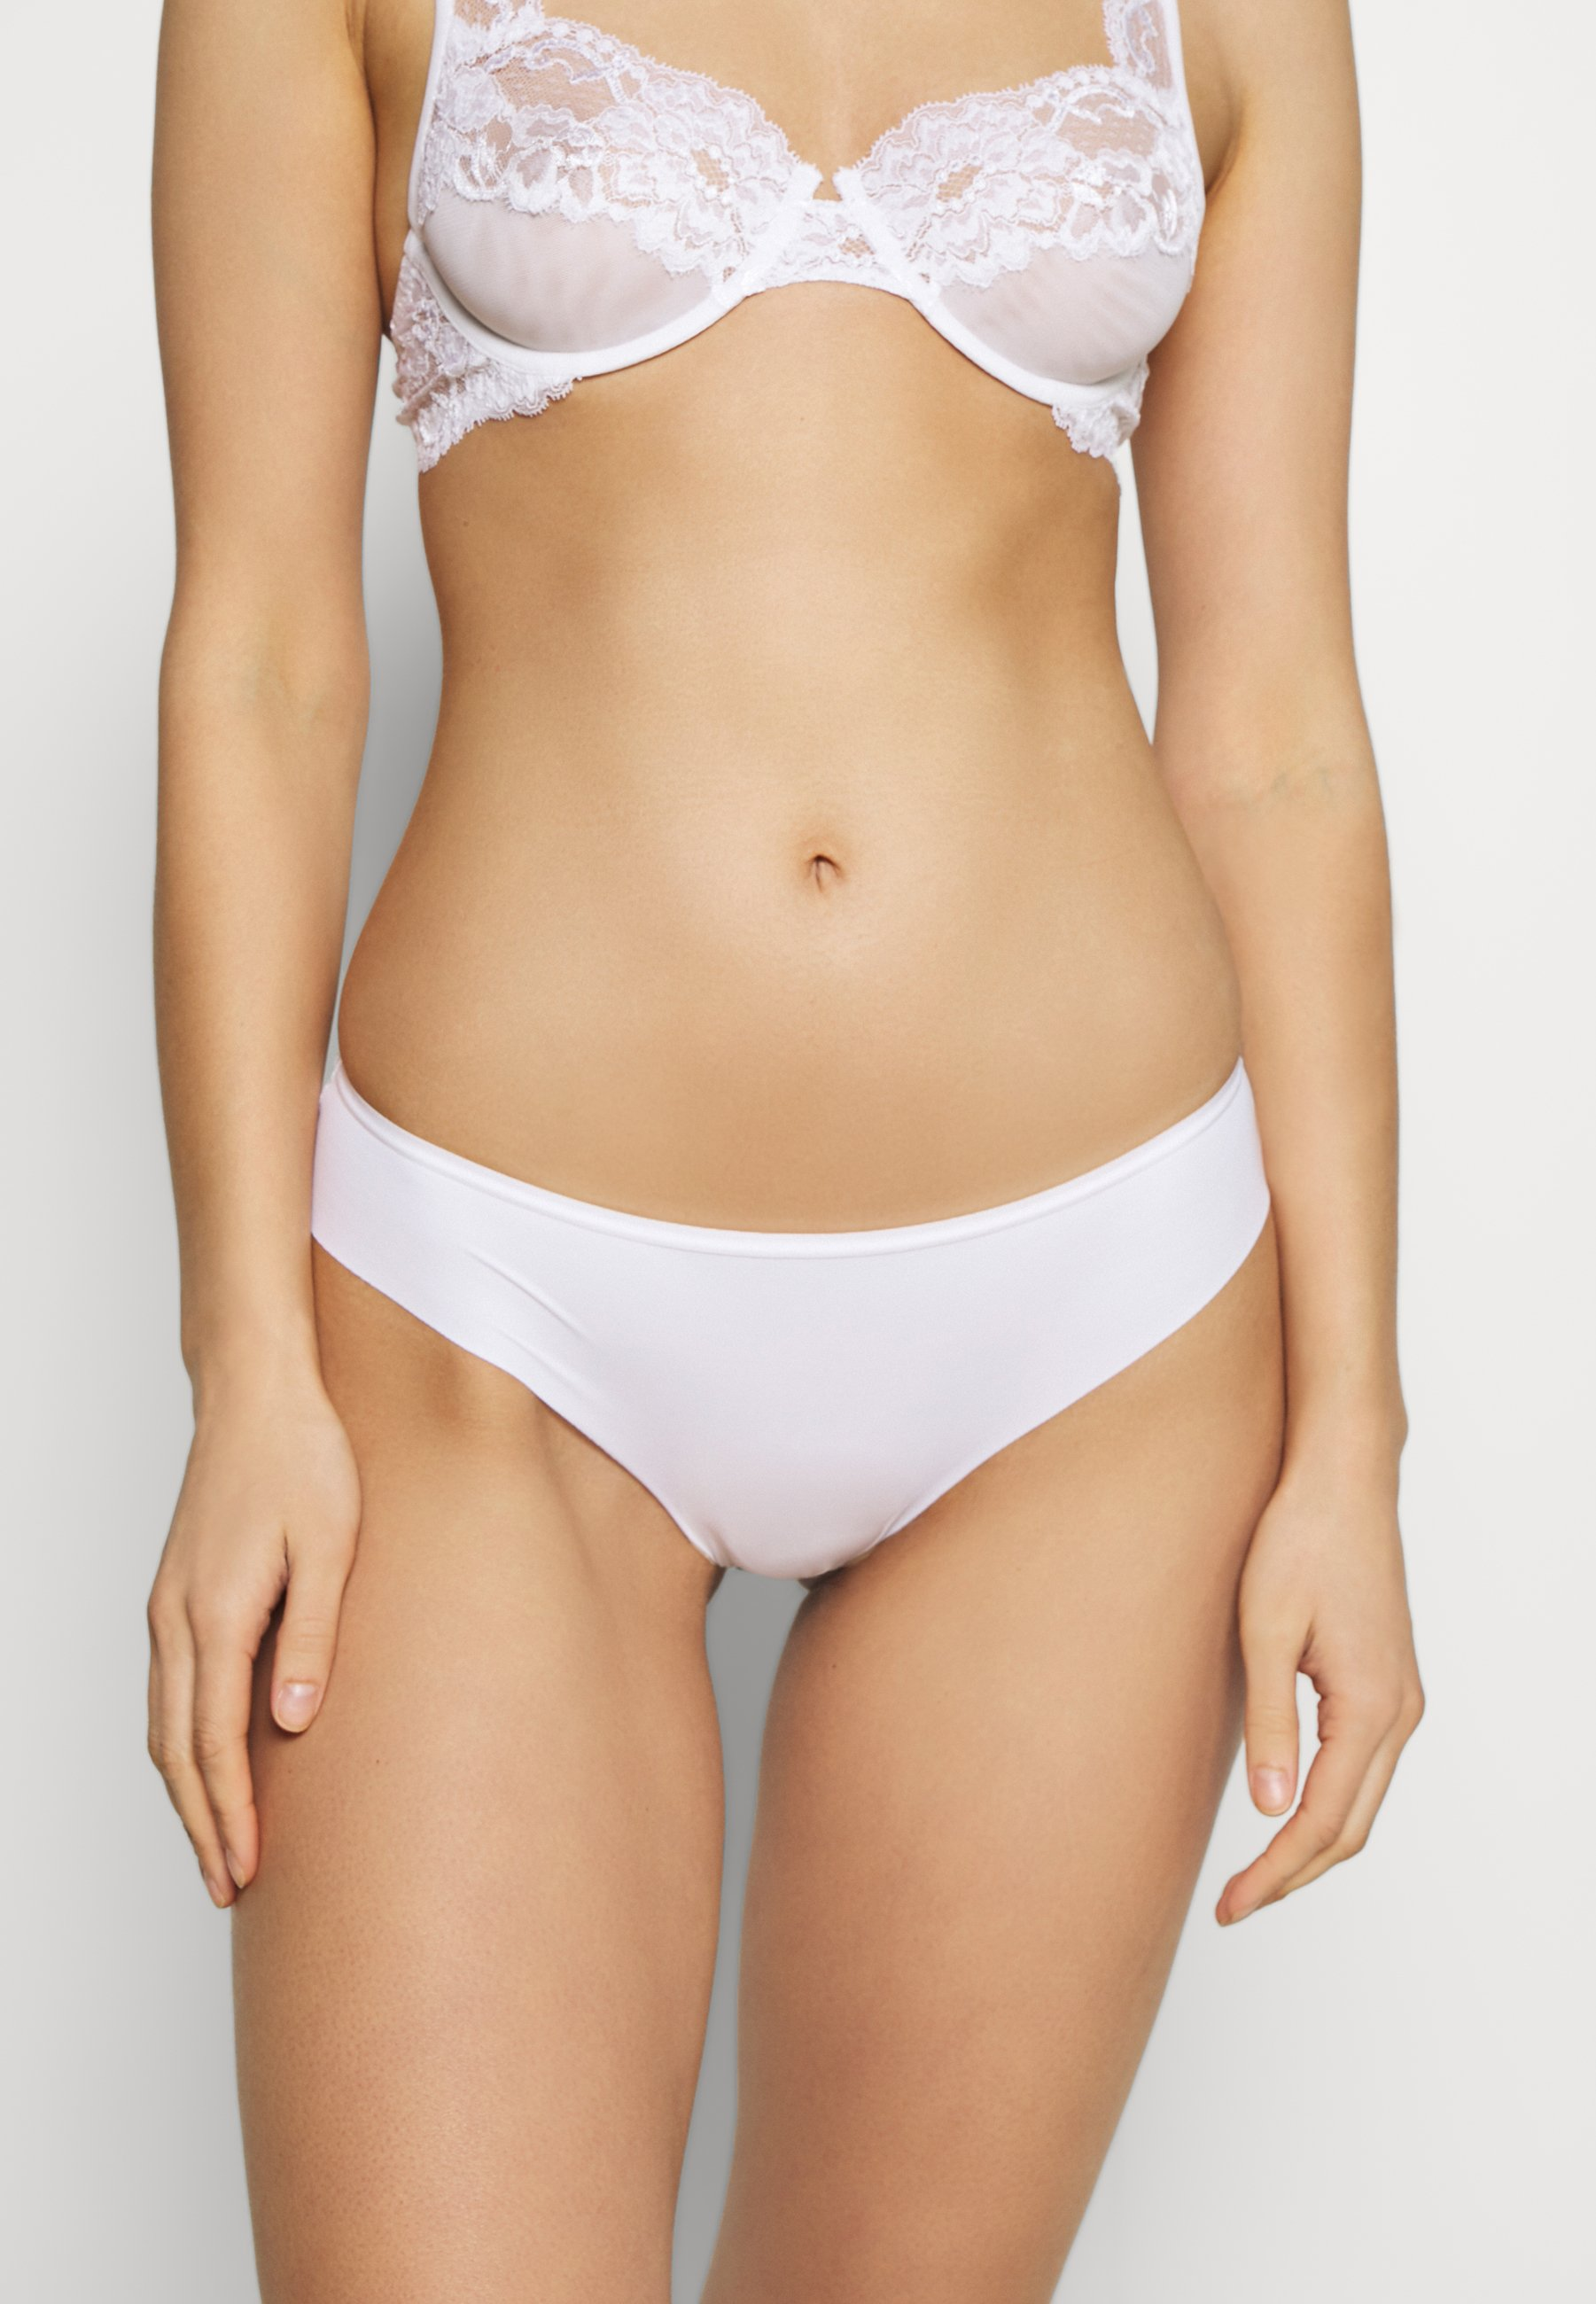 Women INVISIBLE BACK BRASILIAN 3 PACK - Briefs